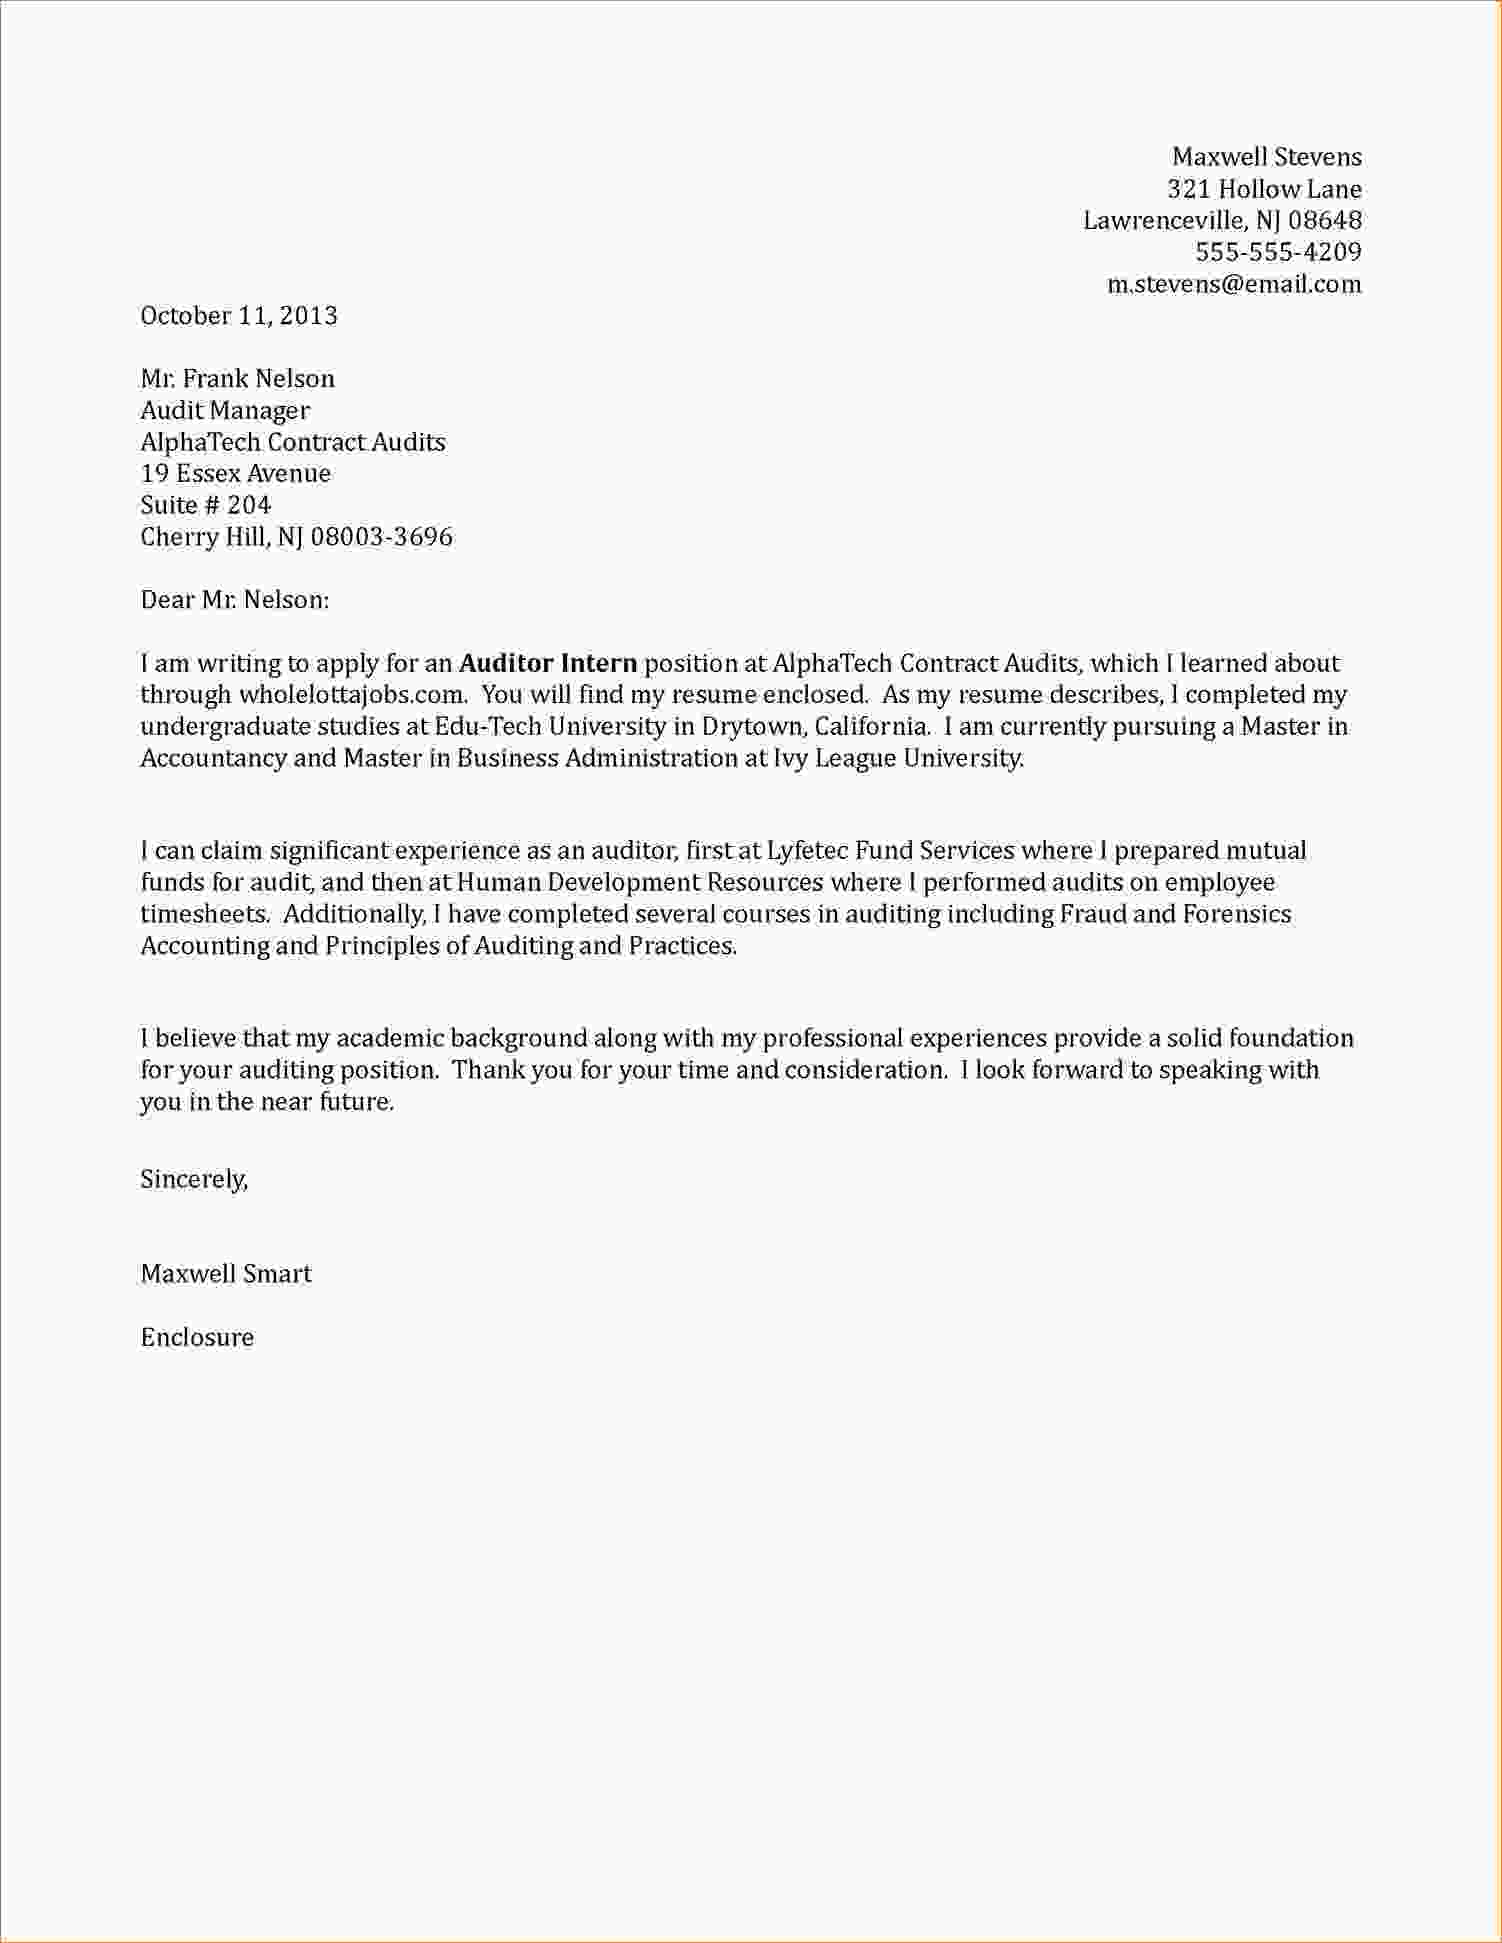 internship-cover-letter-11 Sample Cover Letter Internship Application on for student engineering, computer science, for biology, for information technology, human resource, summer engineering, summer accounting, software engineer, for accounting,